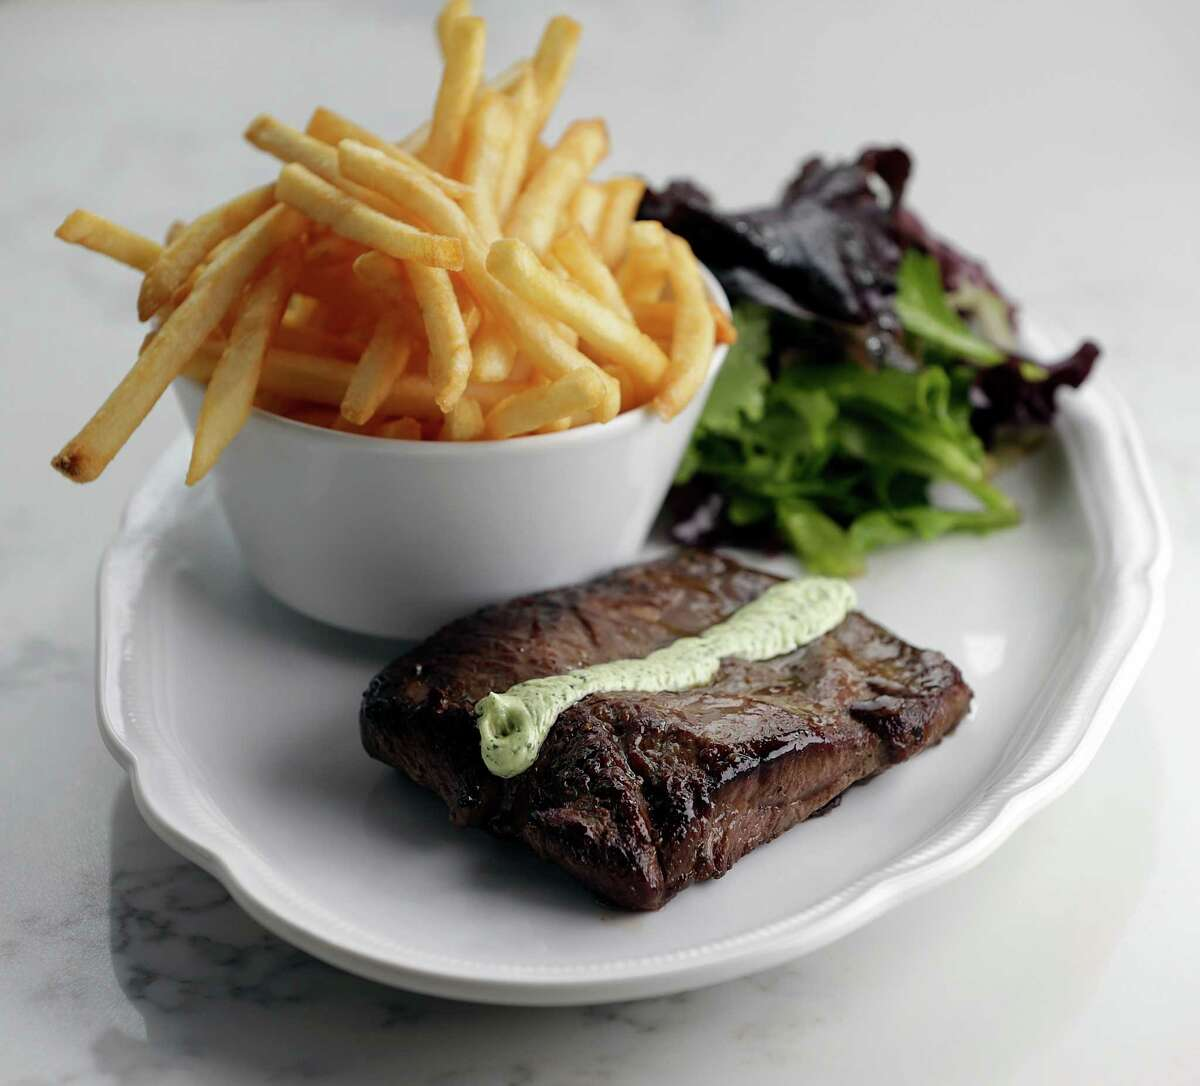 The Steak Frites (8 oz. flat iron) with pommes frites, with spring mix salad at Brasserie du Parc, at One Park Place in downtown Houston.